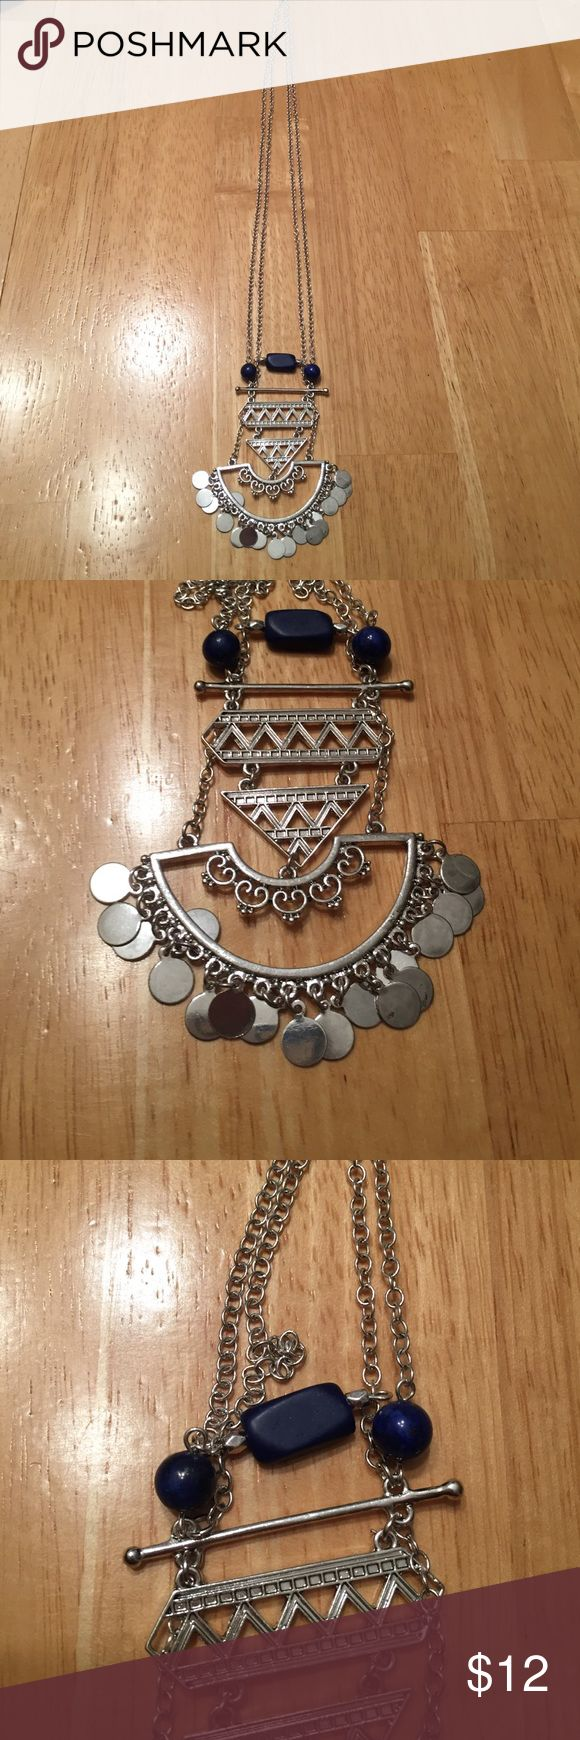 Brand New silver long chain w/ aztec pendant Brand New silver long chain w/ aztec pendant, 3 blue beads on top. Silver-tone finish, long thin chain, medallion pendant, lobster clasp Jewelry Necklaces